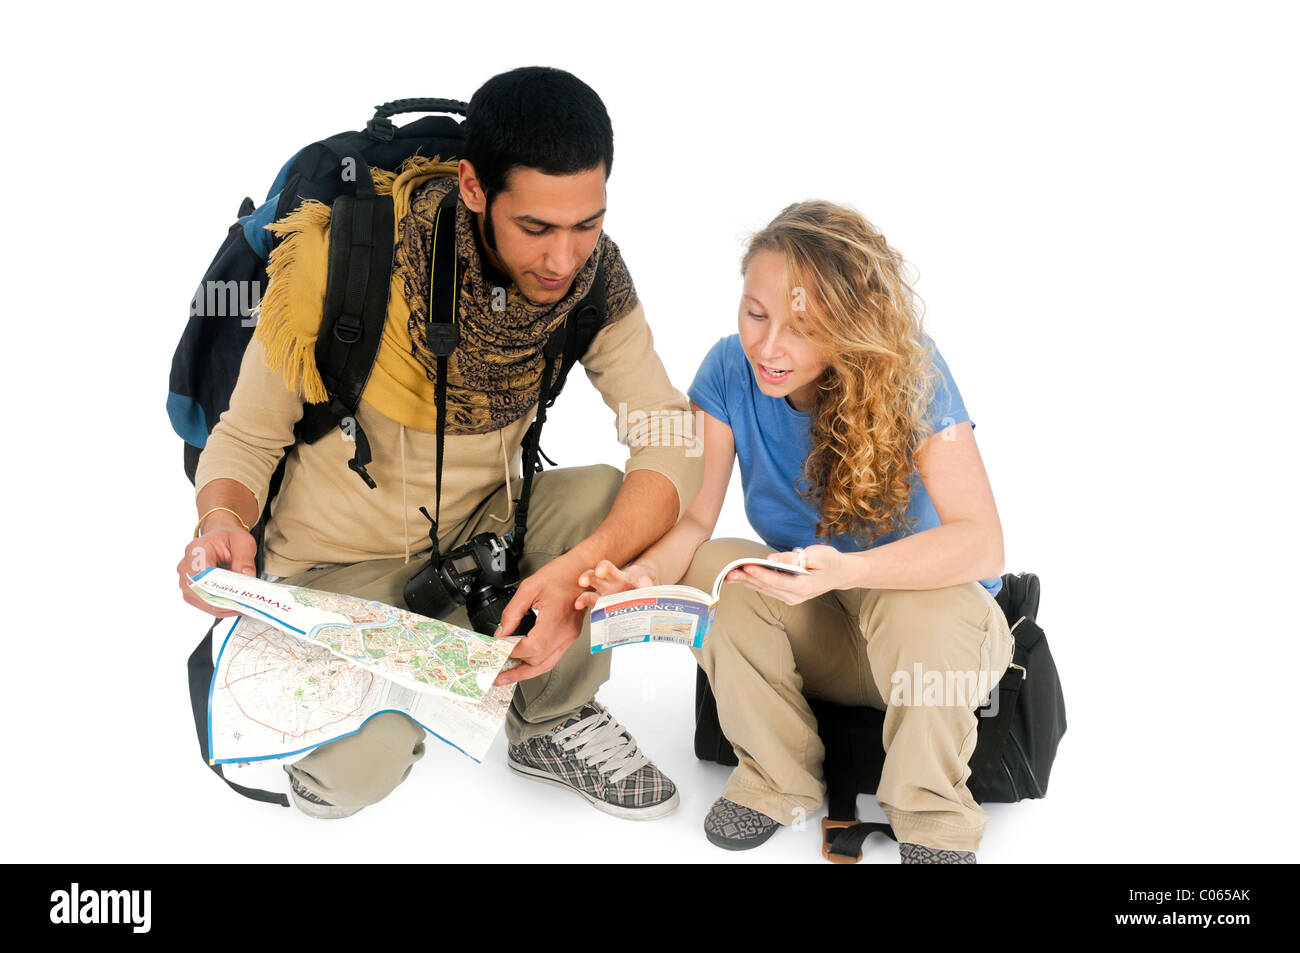 young backpacker couple lost consult map and guidebook On white Background - Stock Image